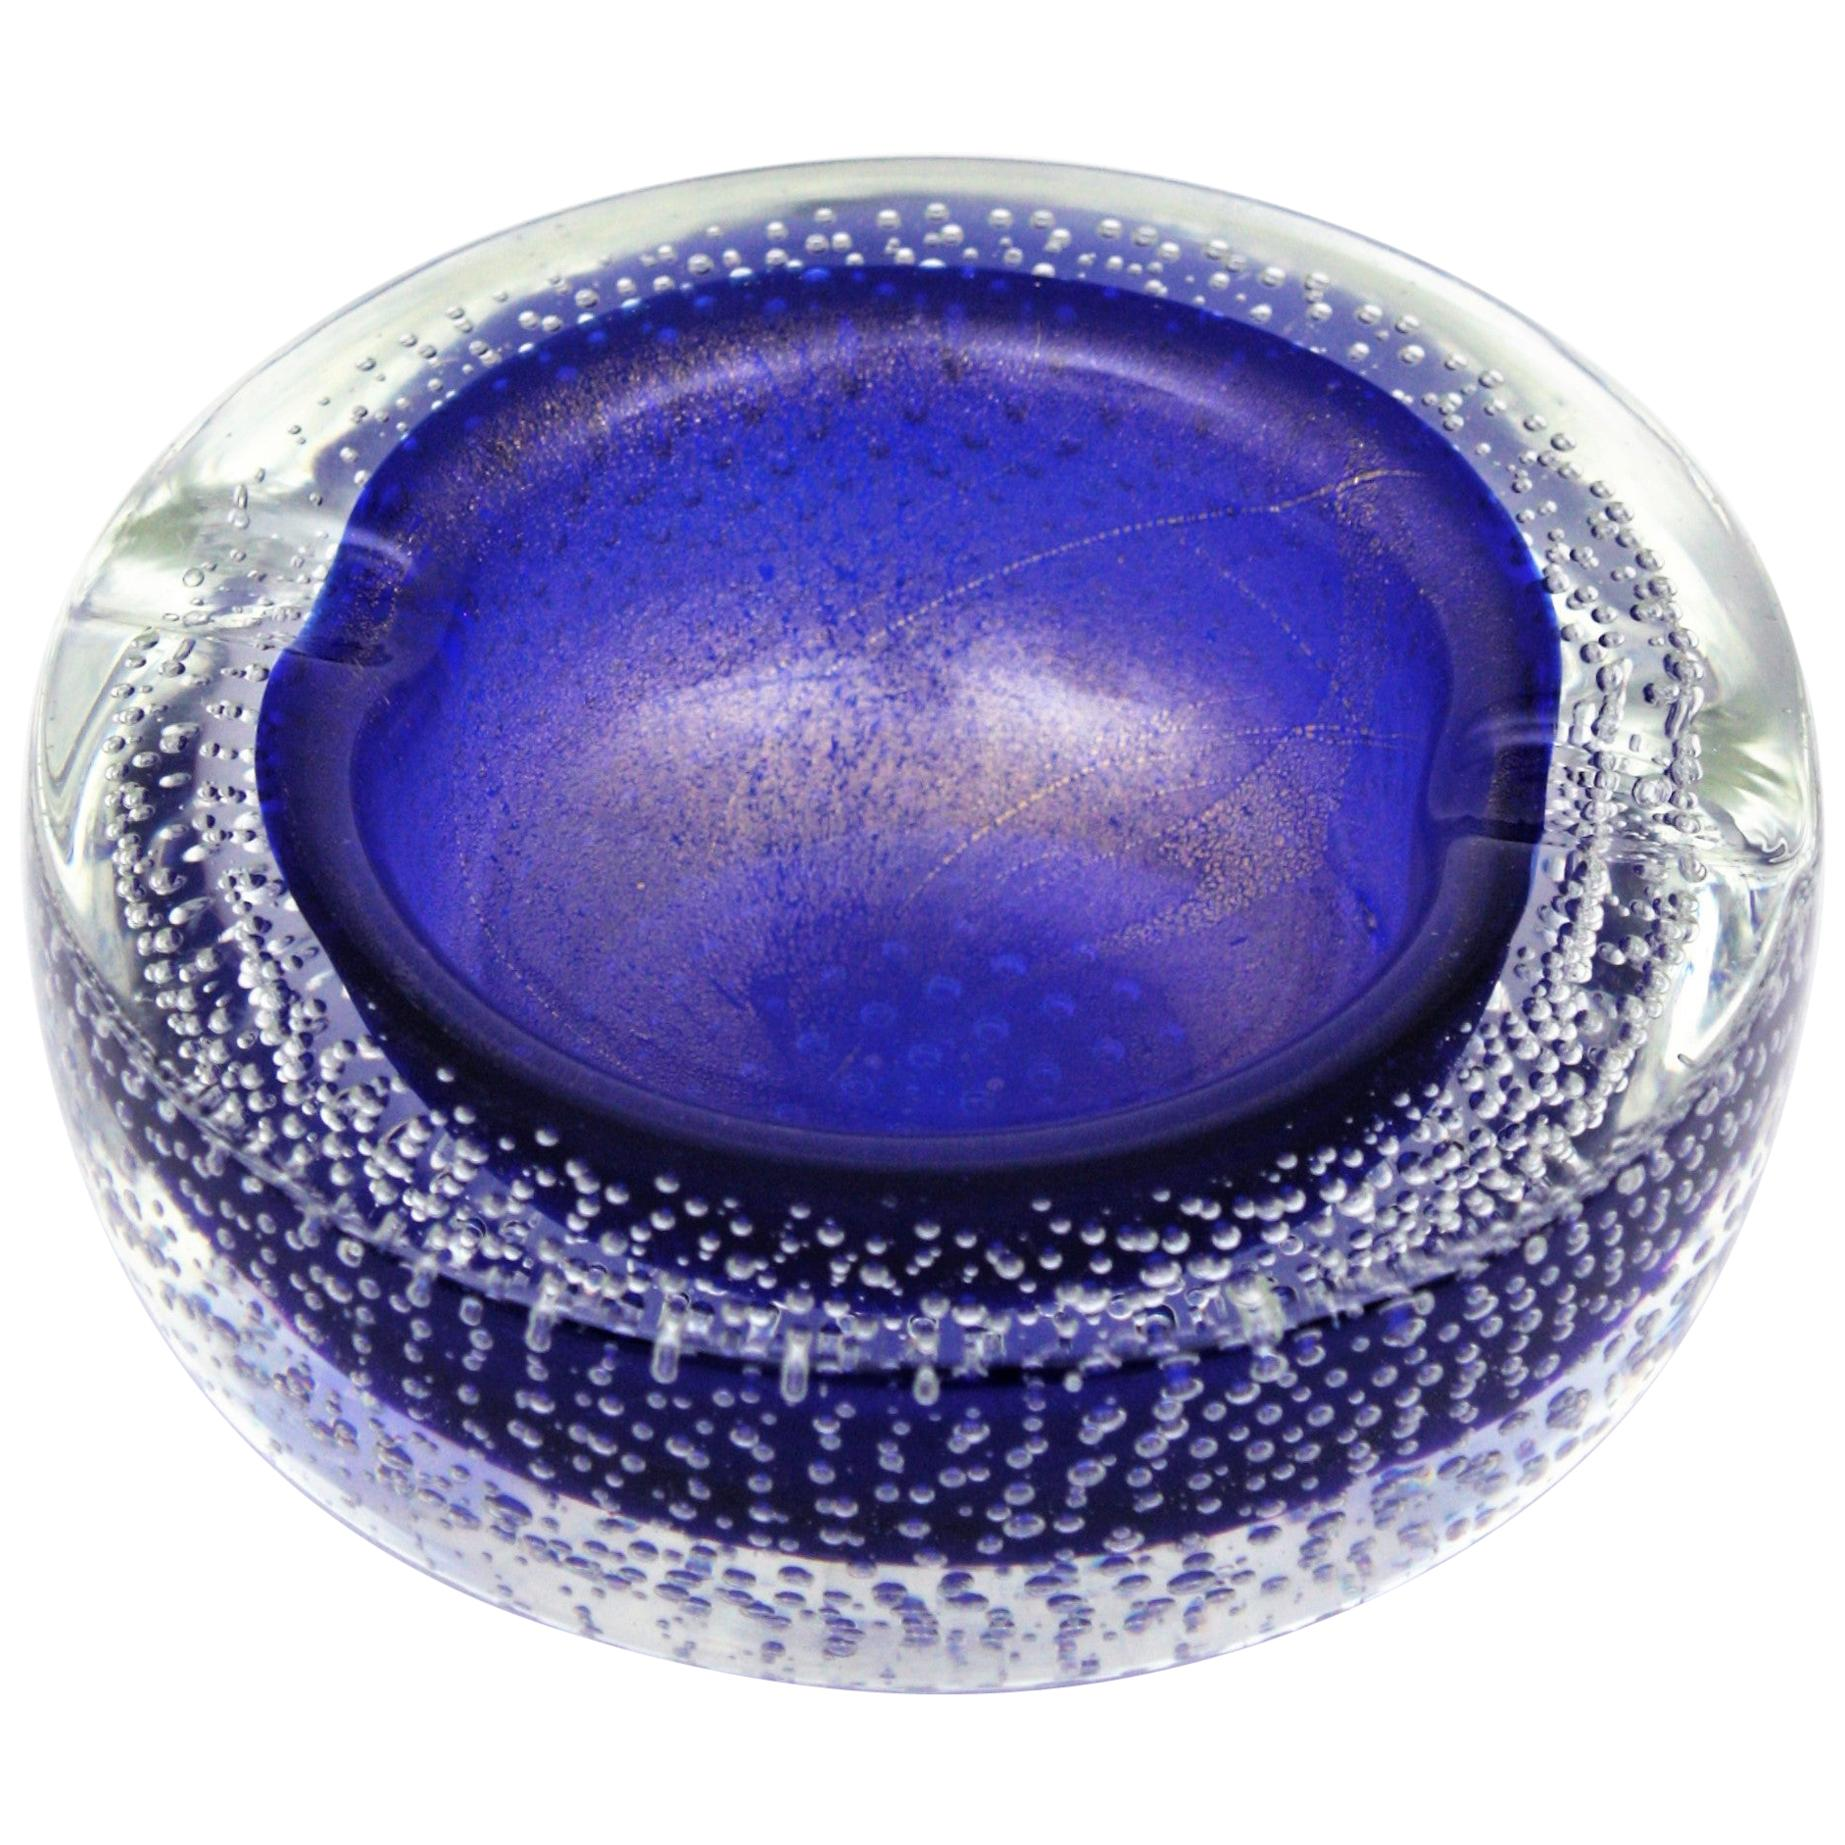 Seguso Murano Cobalt Blue Sommerso Bubbles Italian Art Glass Bowl with Gold Dust